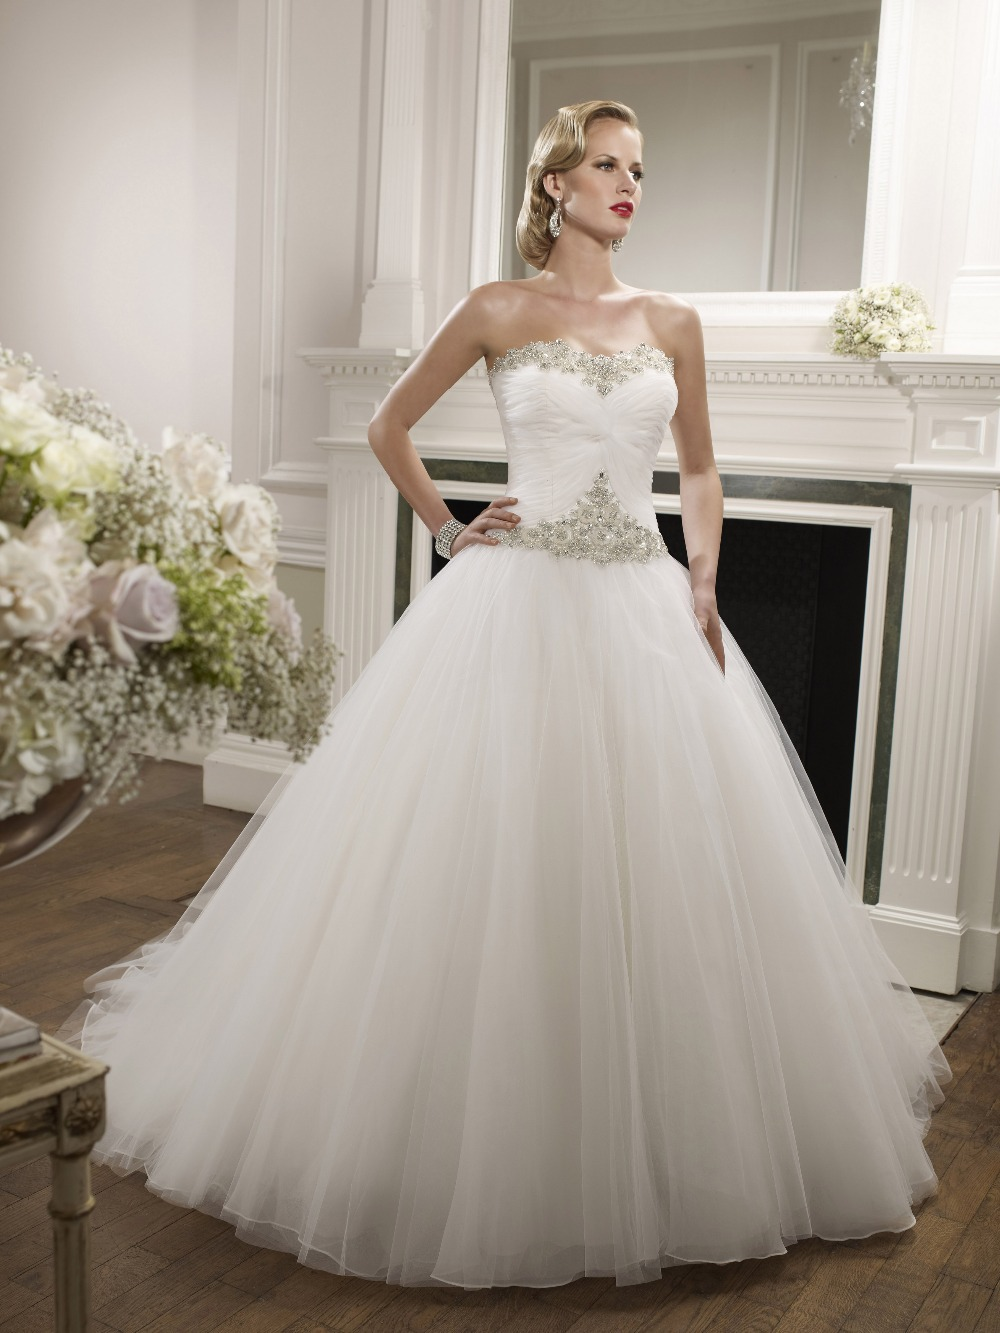 Strapless a line wedding dresses beaded tulle bridal gowns for Beaded wedding dress designers